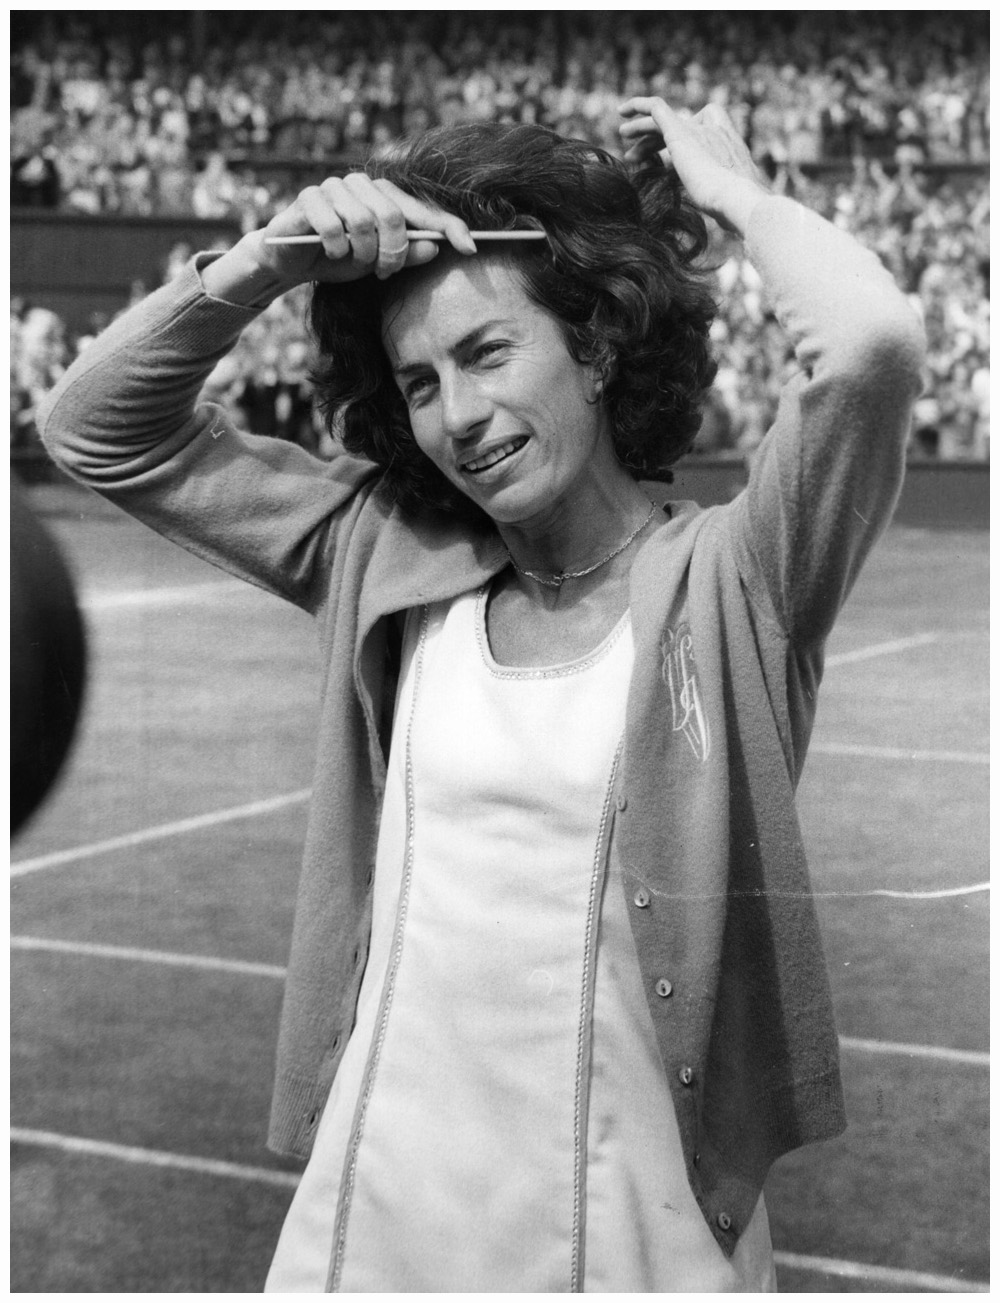 British tennis player Virginia Wade combing her hair as she prepares to meet the Queen after her victory in the Women's Singles Final at Wimbledon. She beat the Dutch player, Betty Stove.